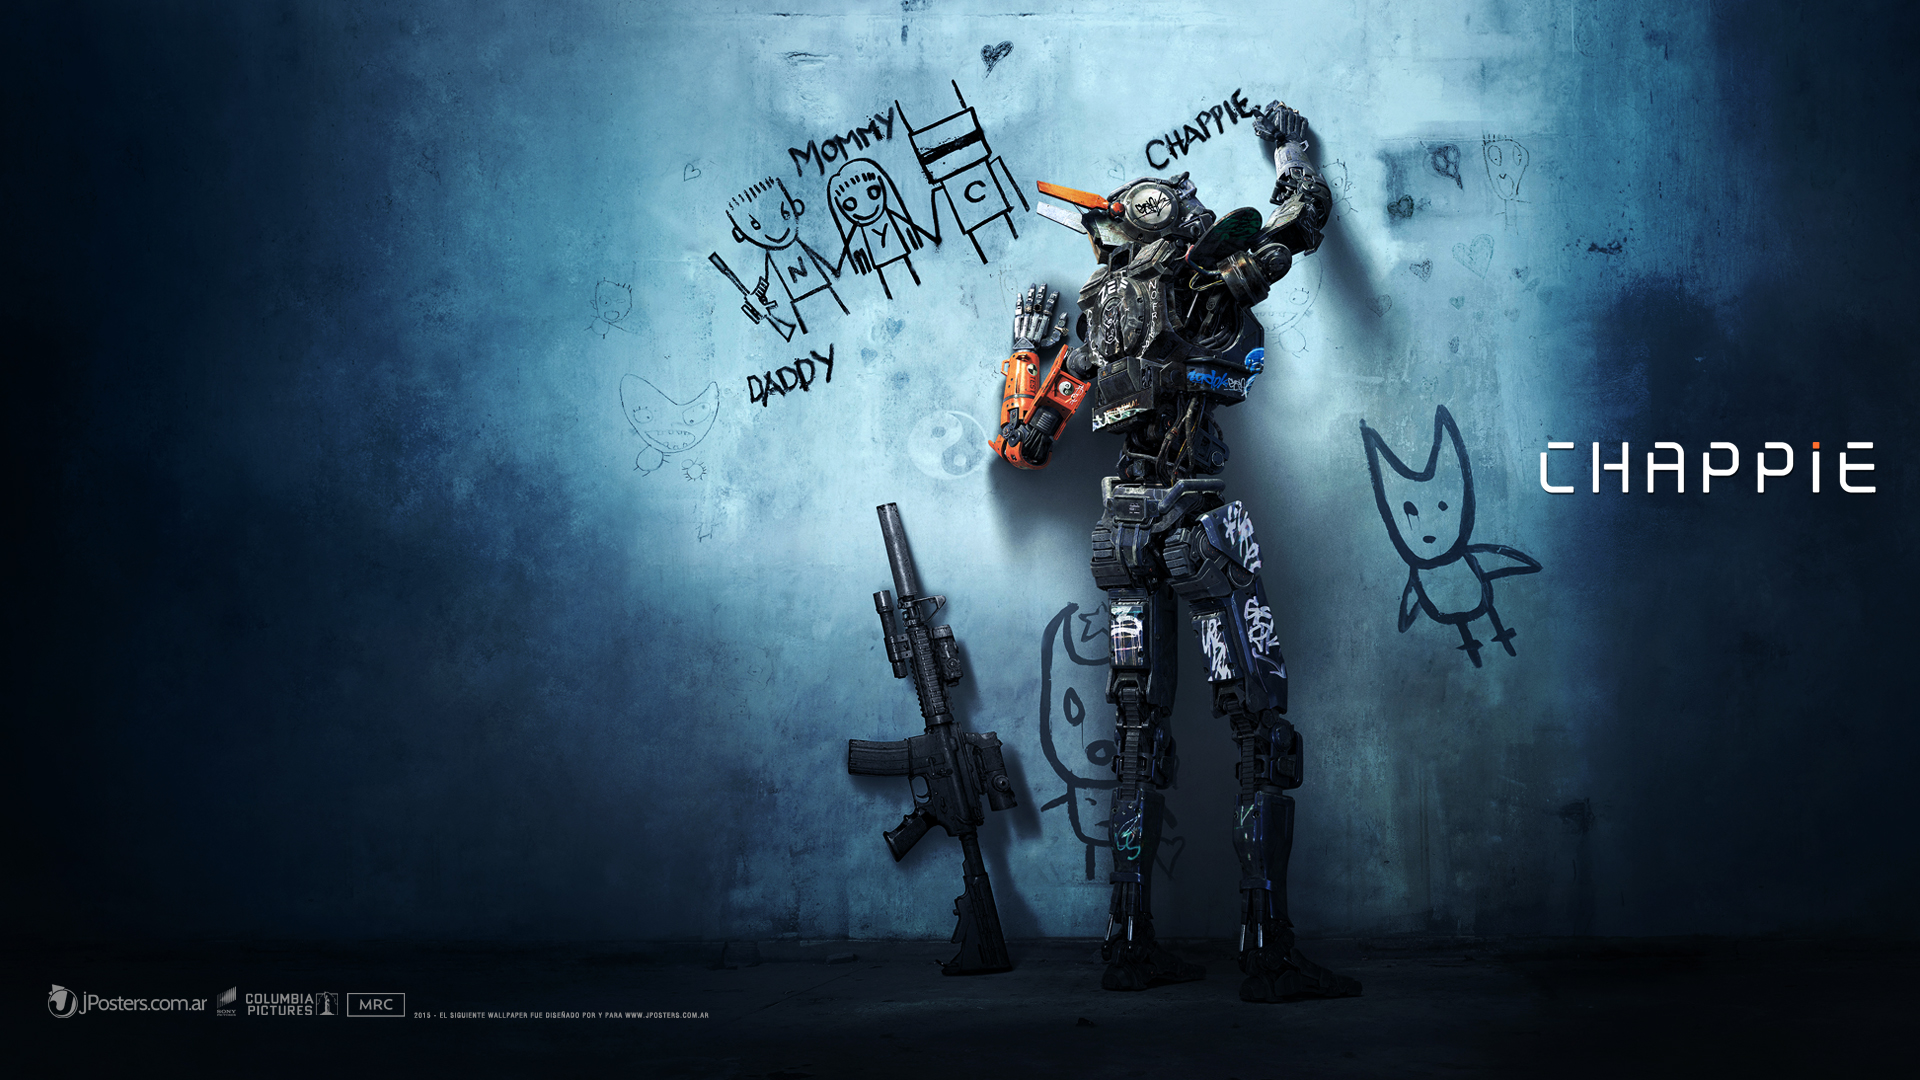 Chappie Wallpapers Download T715T95   4USkY 1920x1080